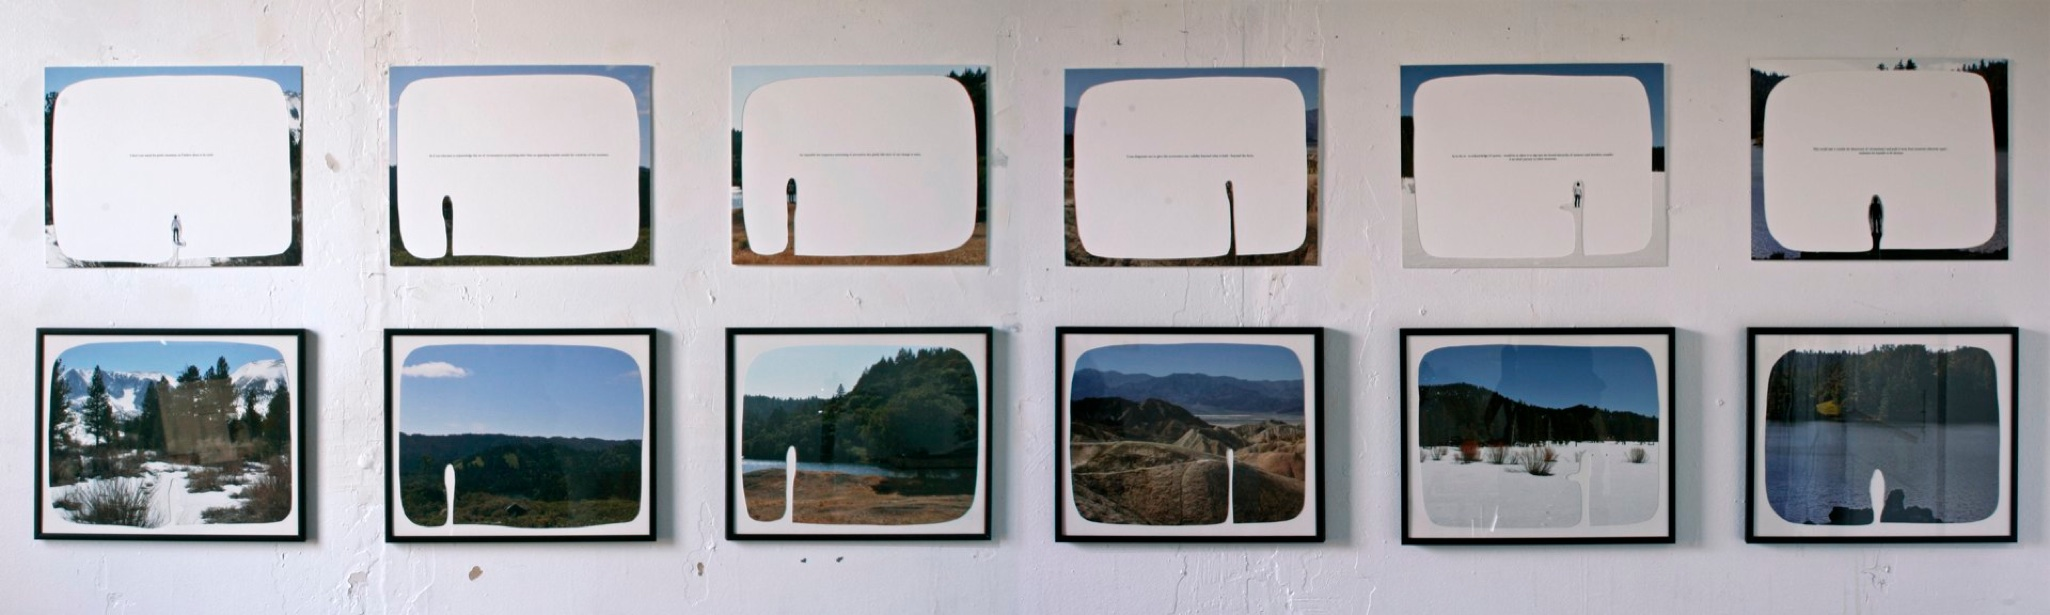 """enjoyable but temporary, 2008  6 cut-out chromogenic prints on board with text, a set of 12, 36cm x 28 cm / 14""""x 11"""""""